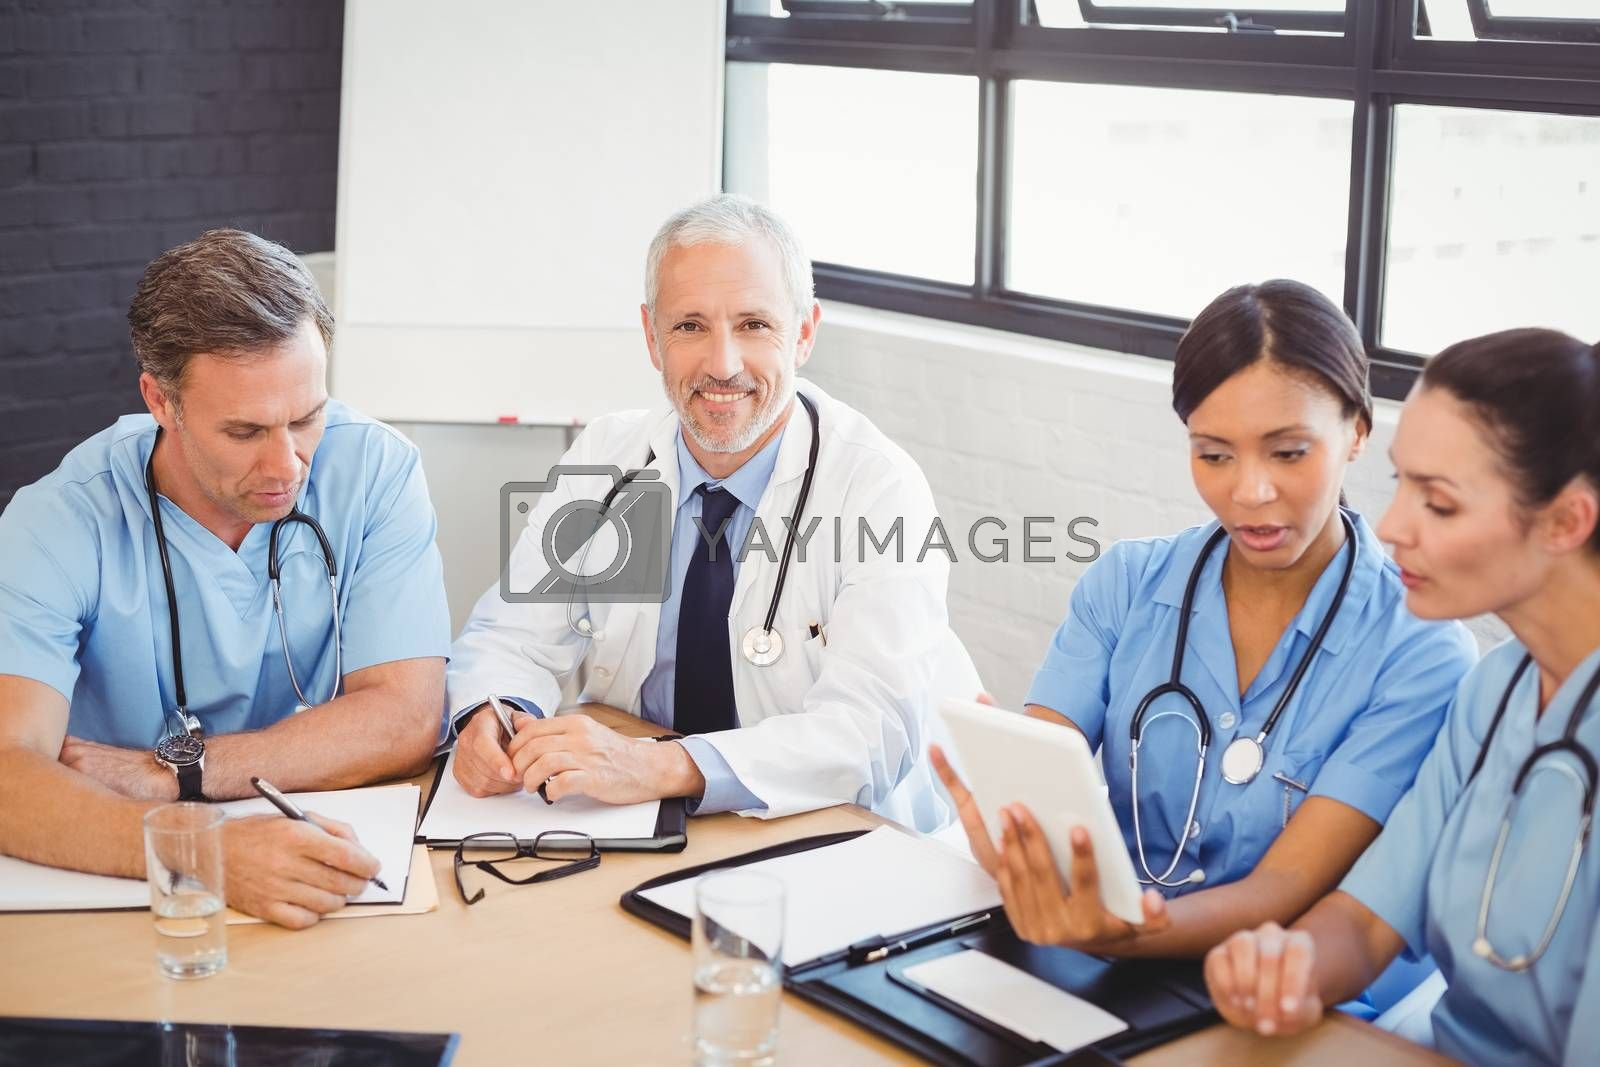 Portrait of male doctor smiling in conference room and colleagues discussing beside him